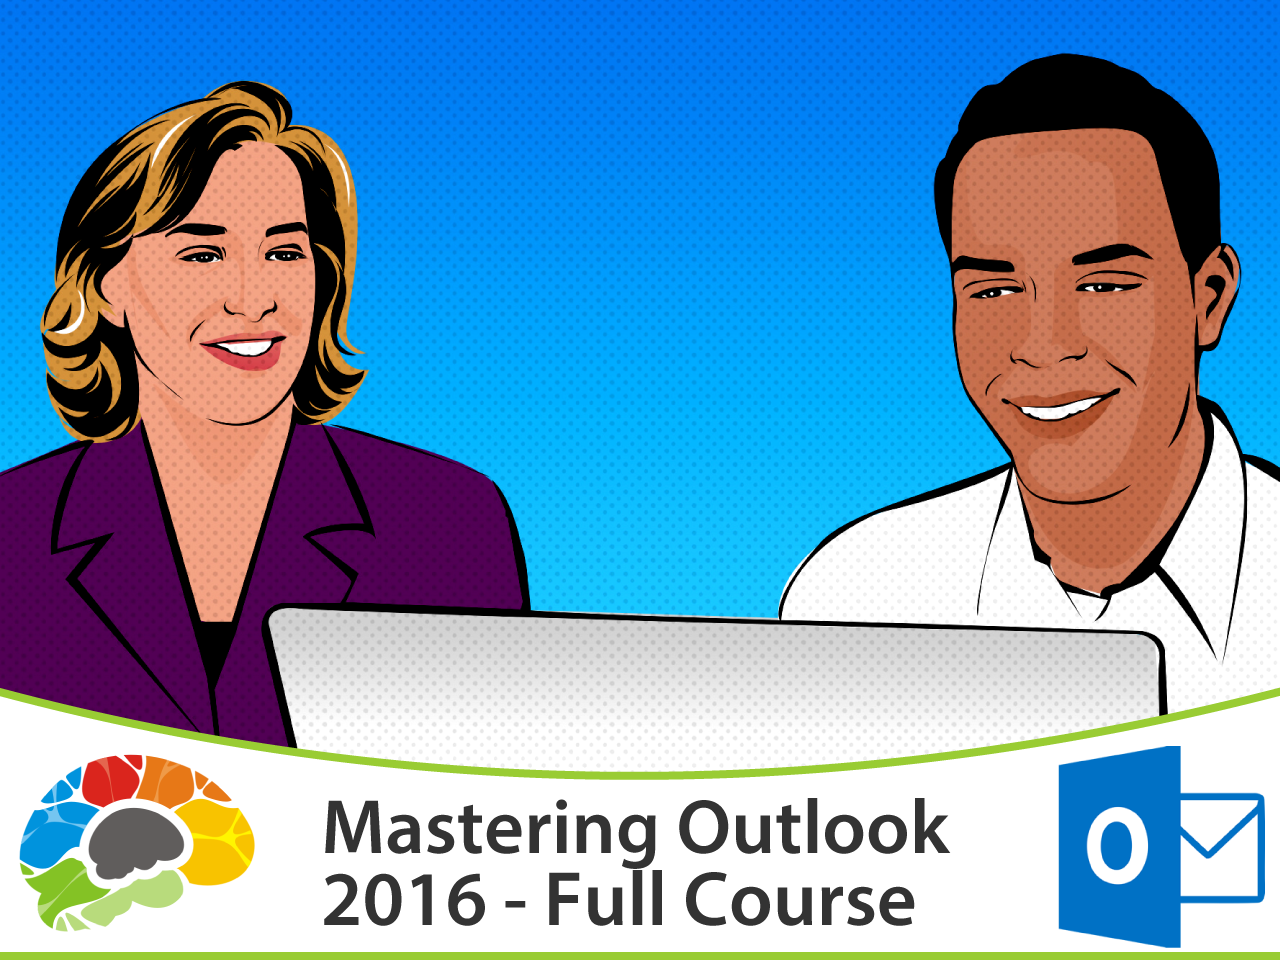 Mastering Outlook 2016 (full course)